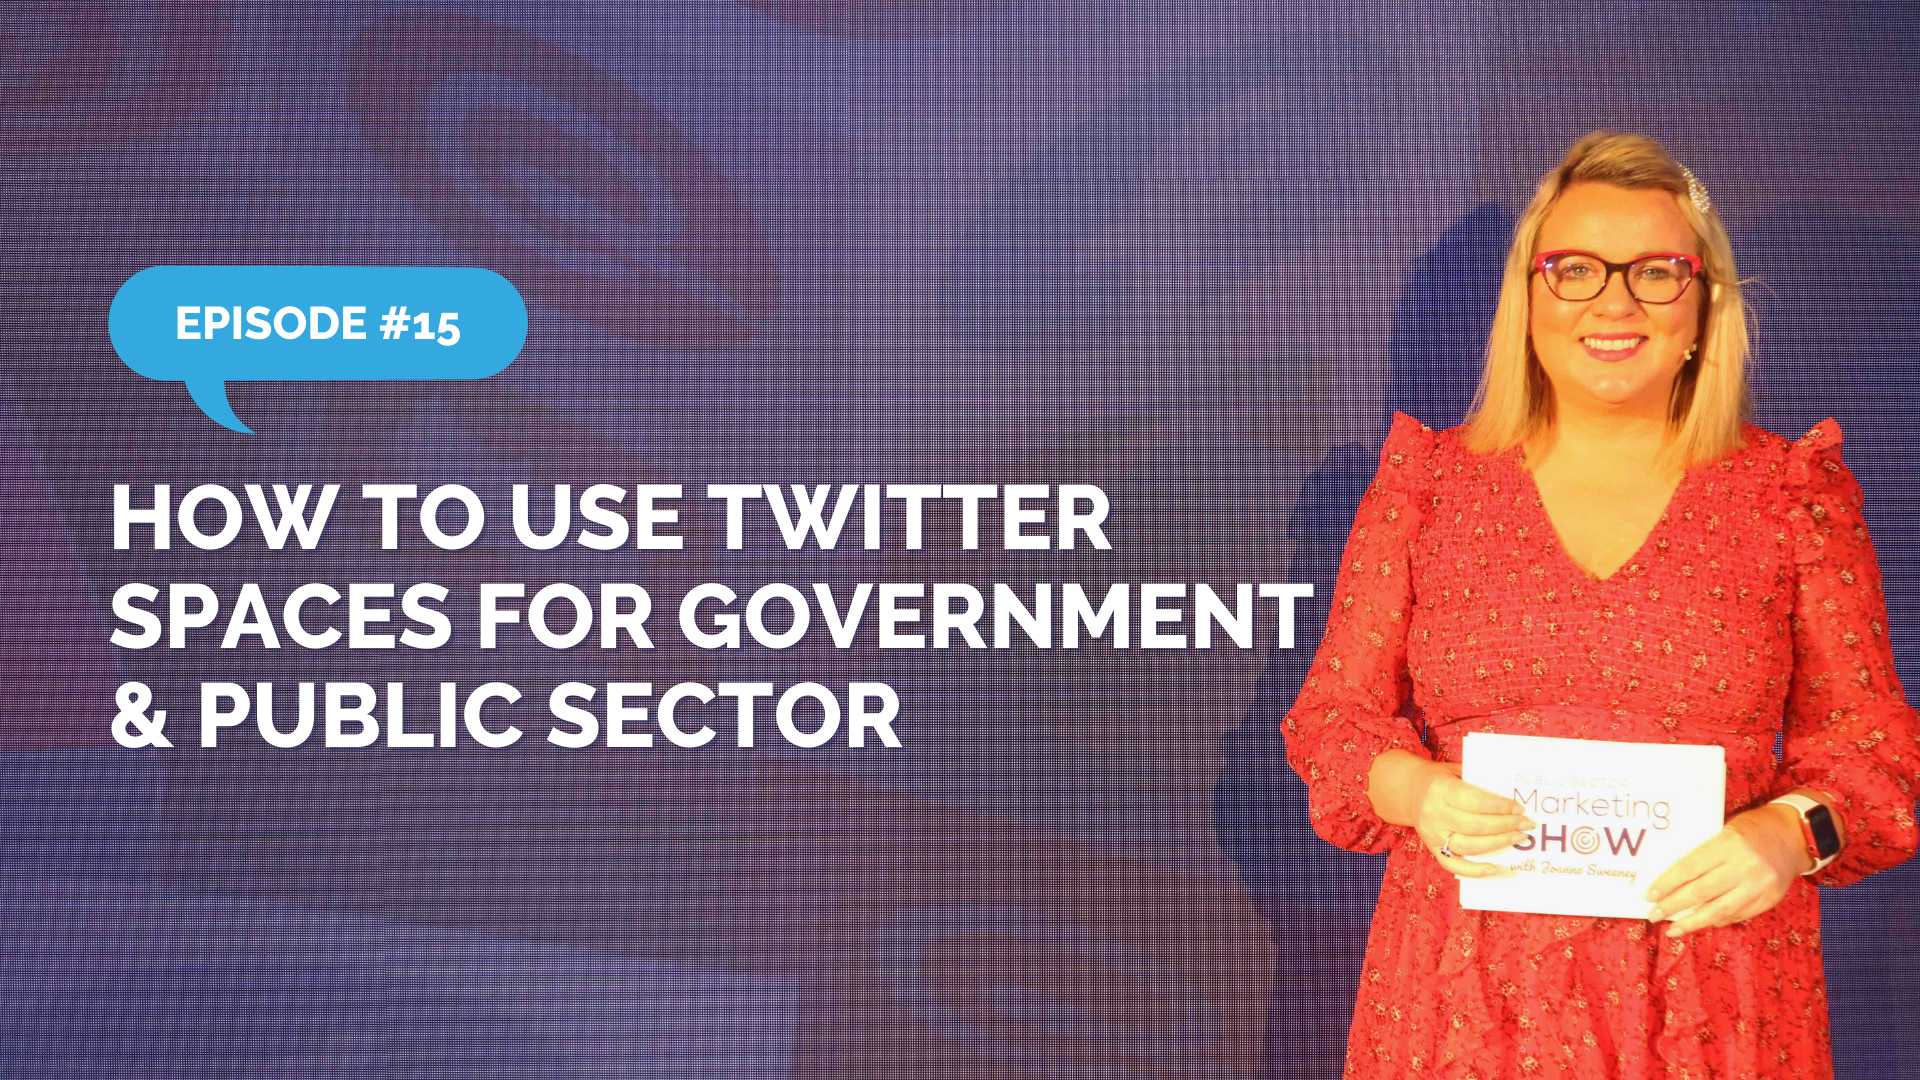 Episode 15 - How to Use Twitter Spaces for Government & Public Sector